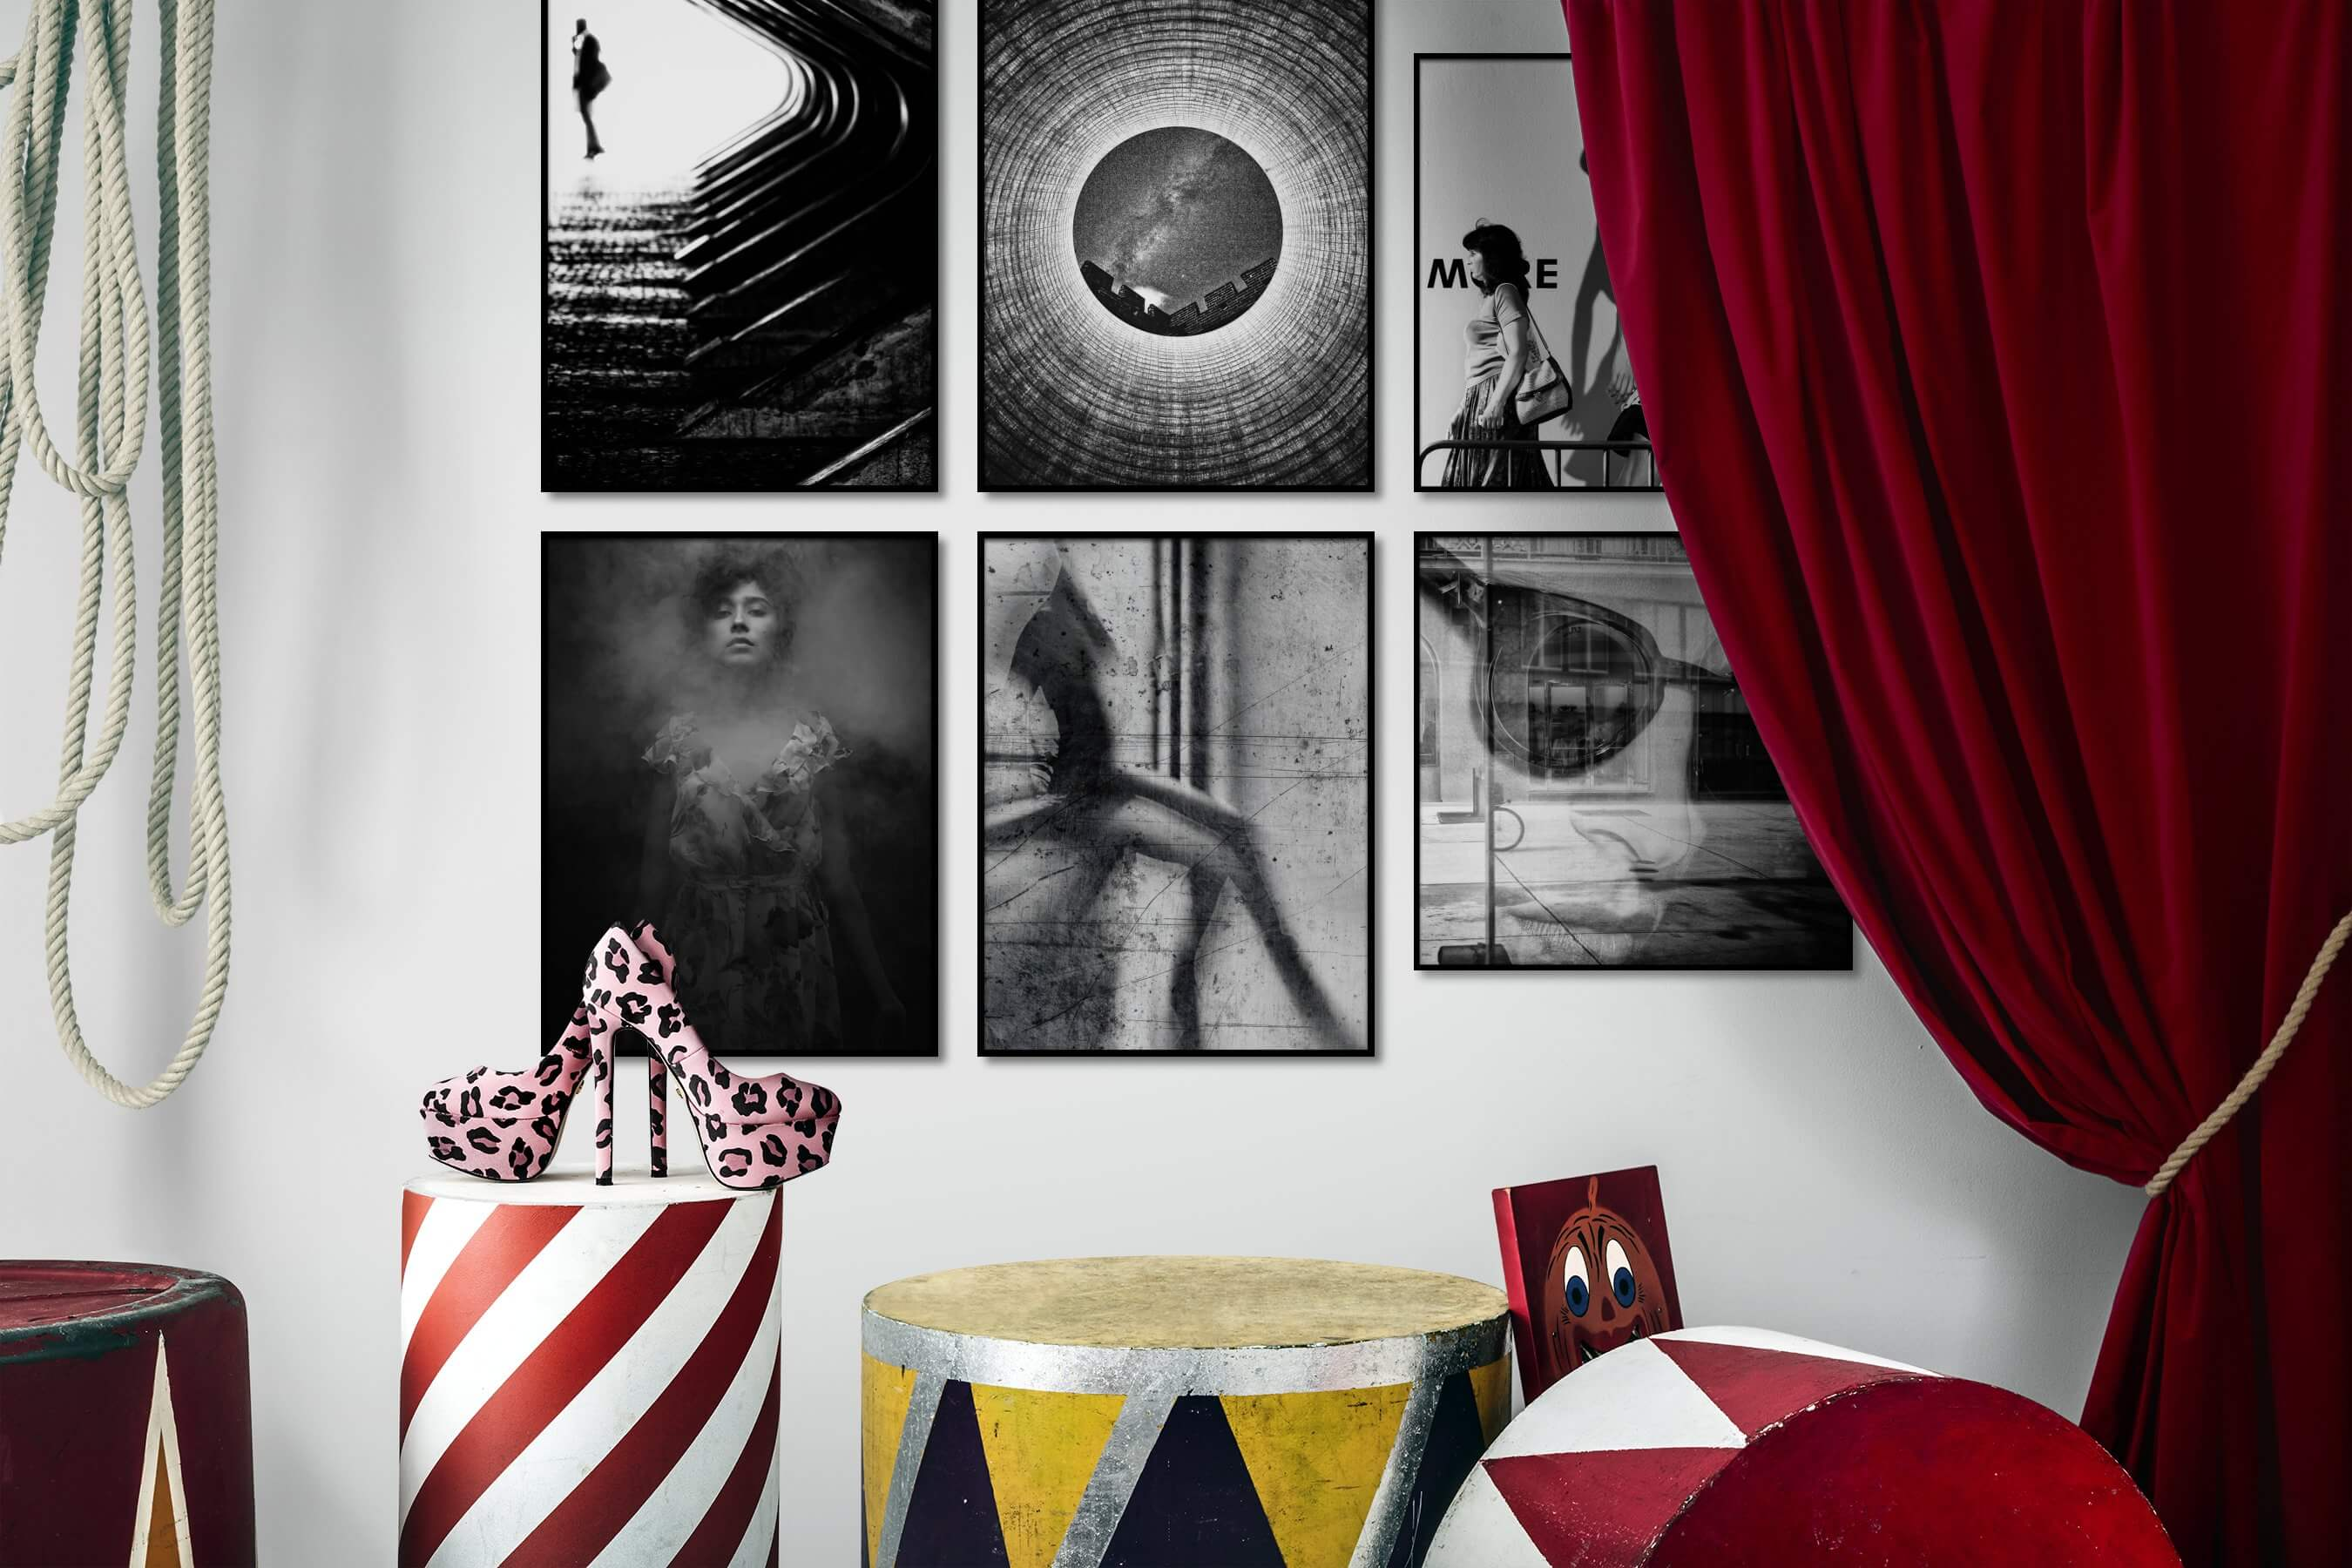 Gallery wall idea with six framed pictures arranged on a wall depicting Black & White, For the Moderate, City Life, For the Maximalist, and Fashion & Beauty